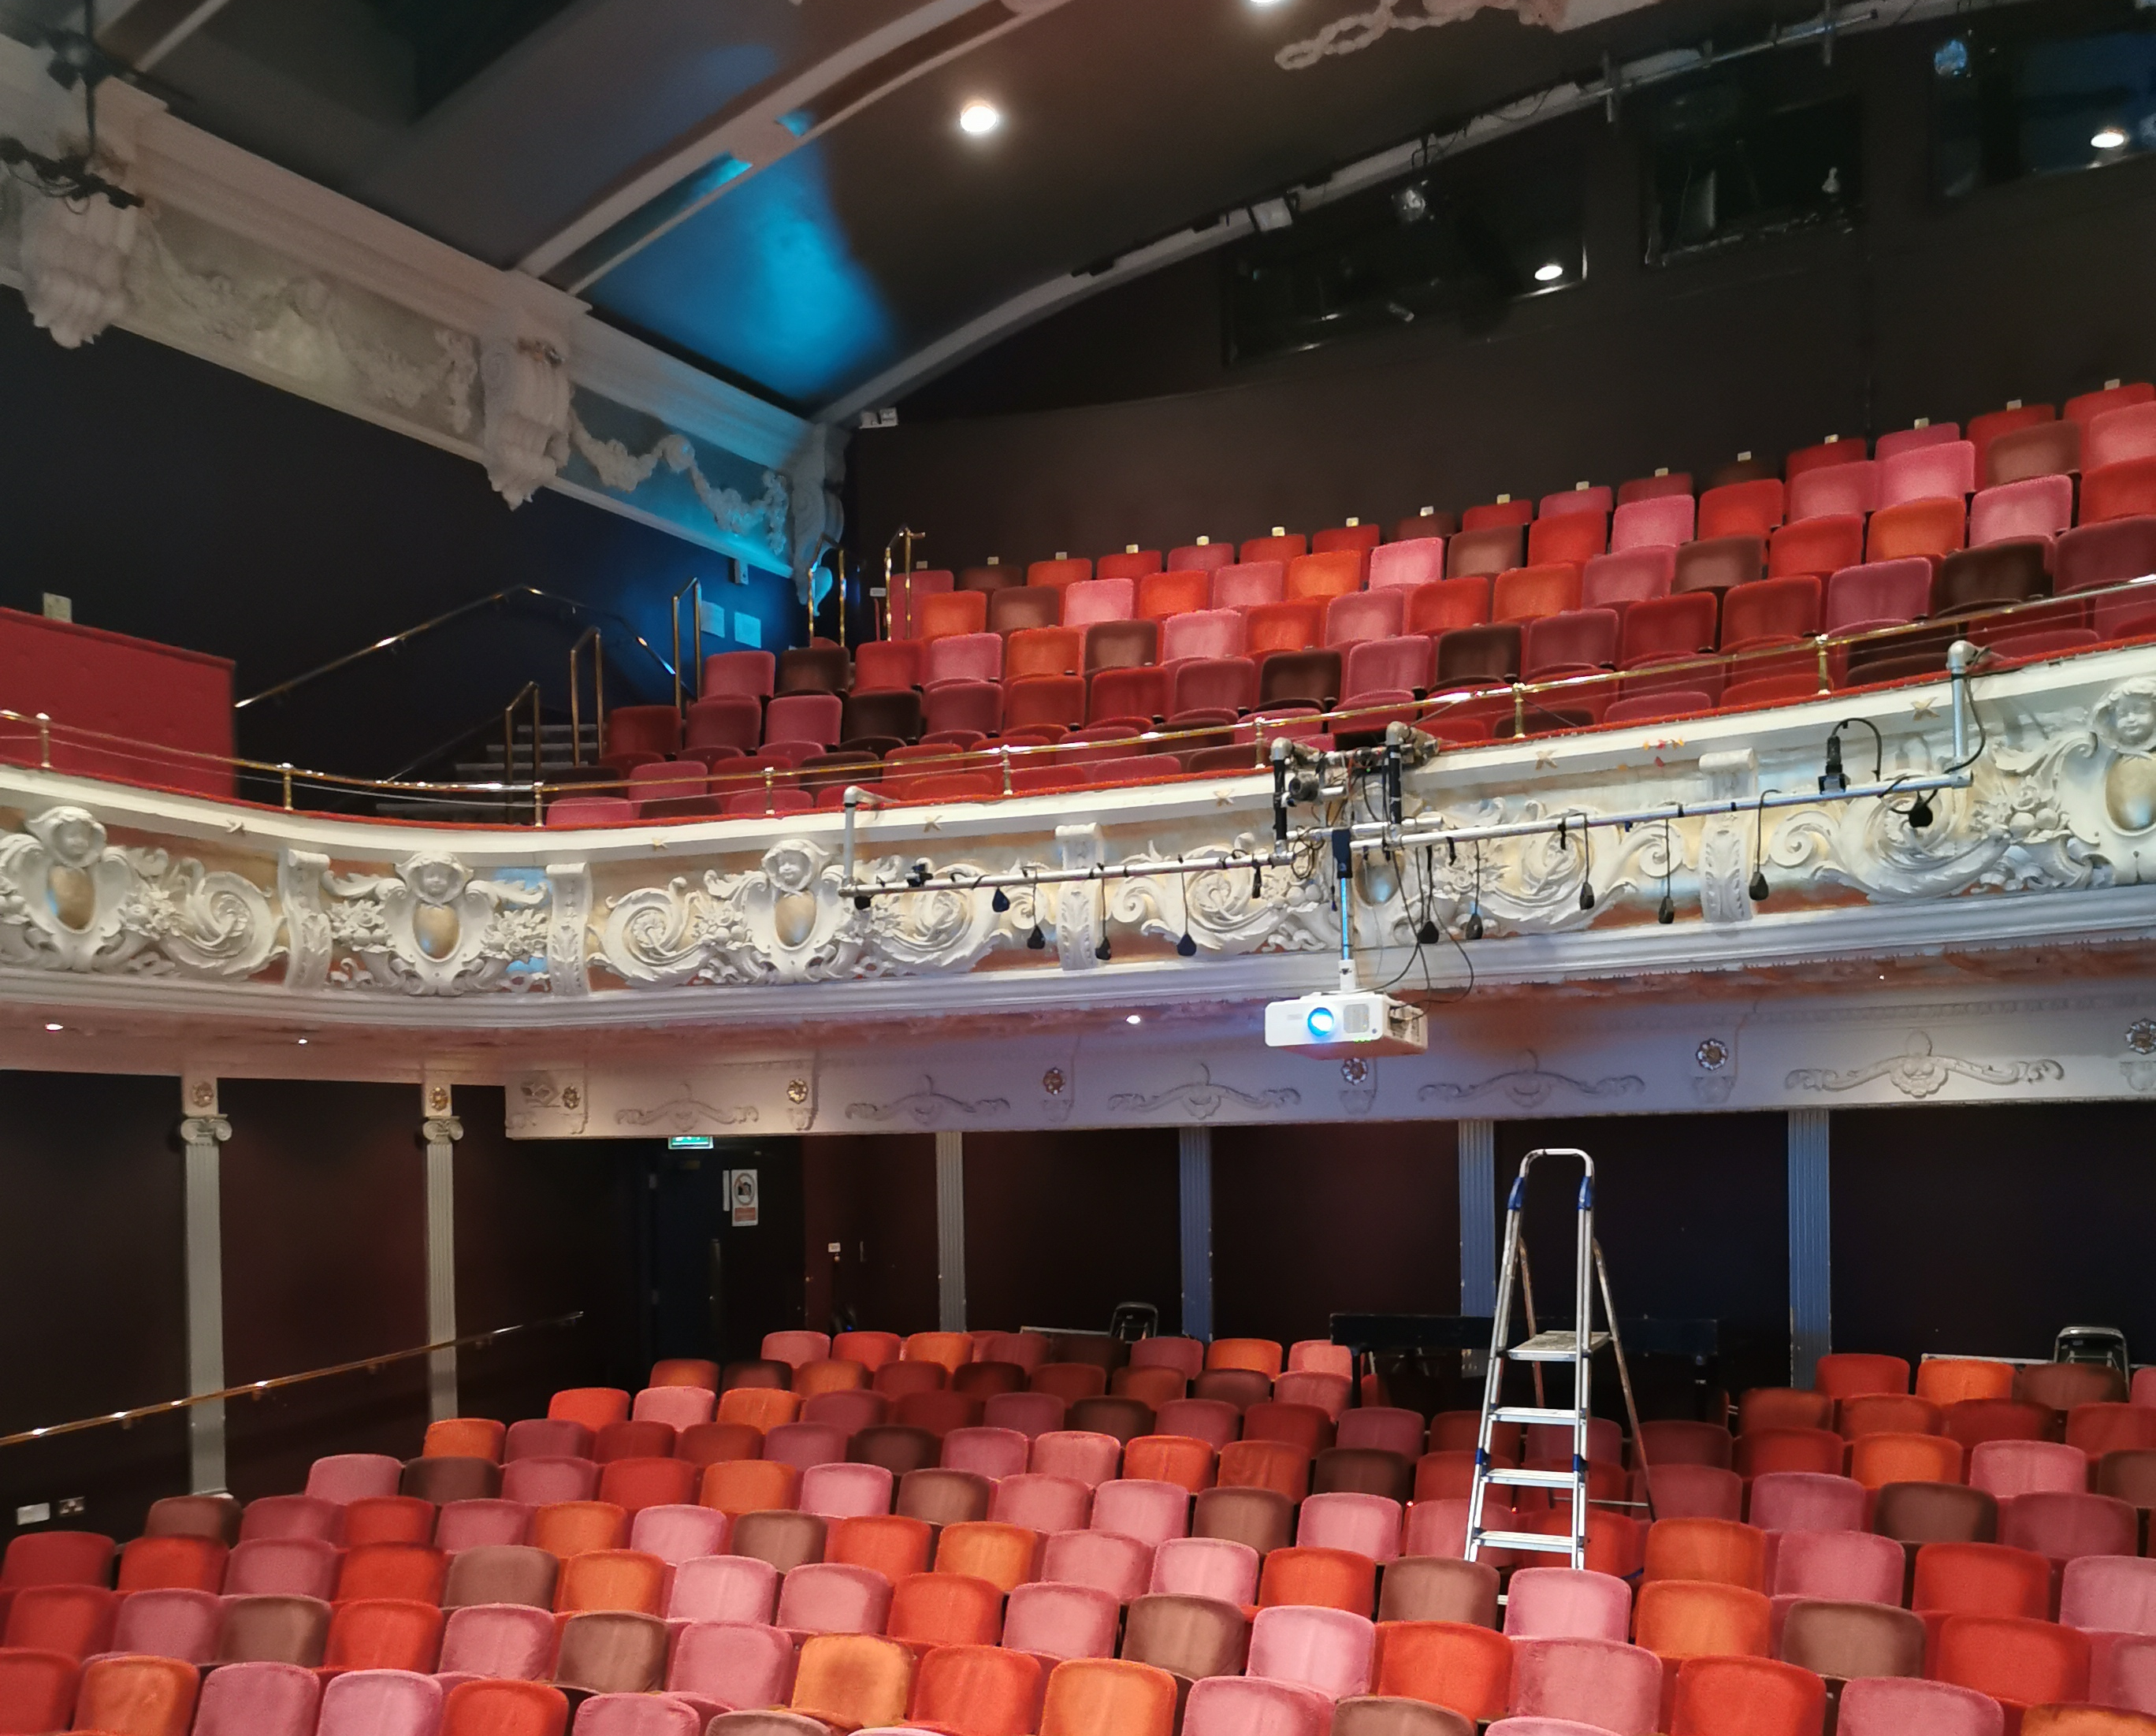 an empty theatre auditorium with rows of read seats and a balcony, a ladder in the centre of the room